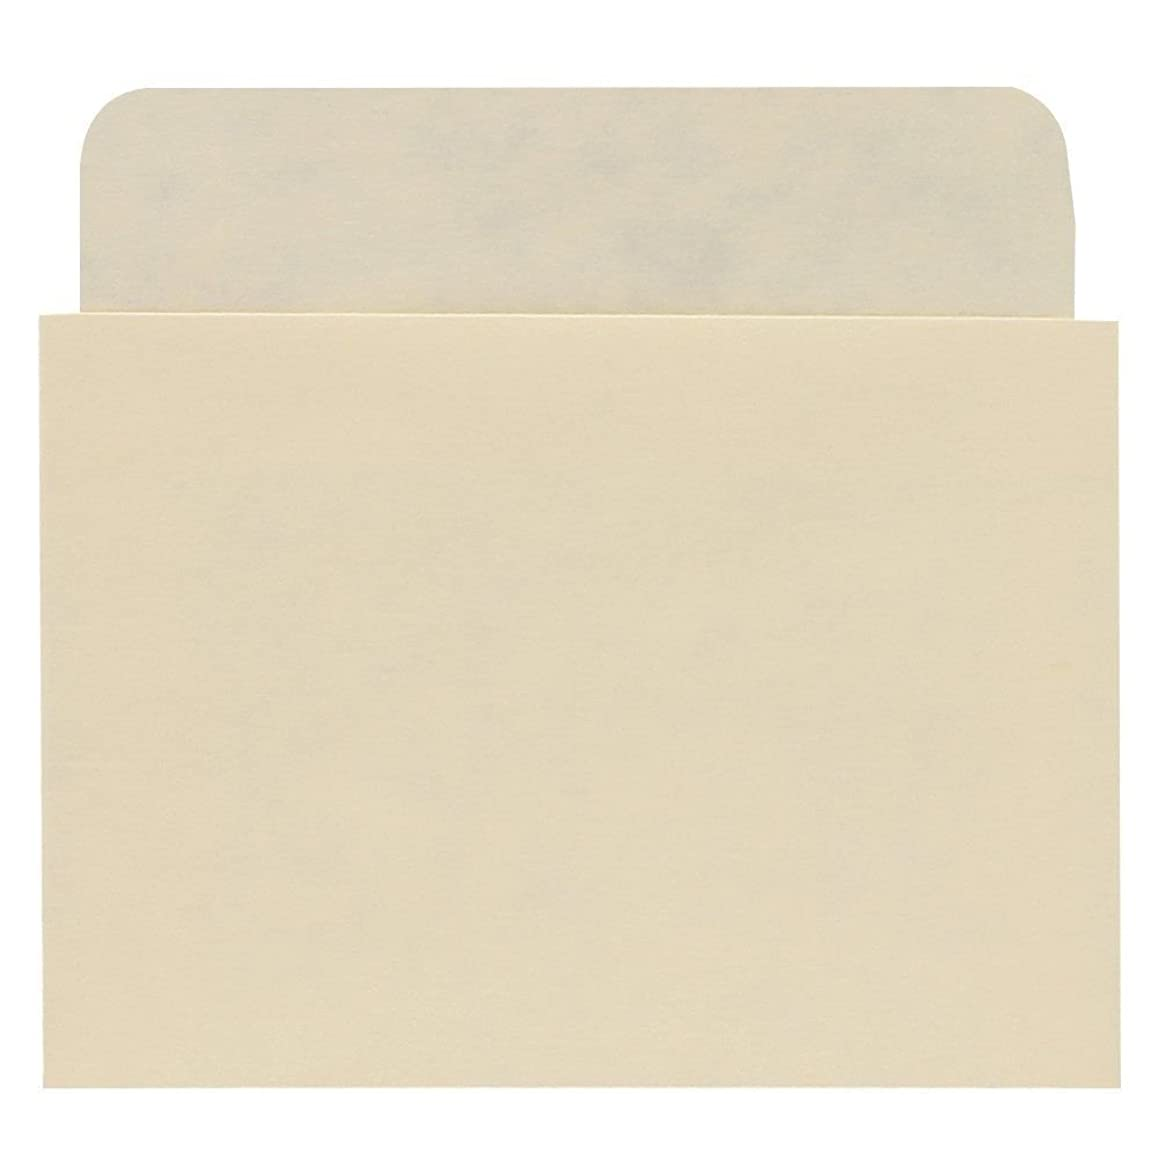 Hygloss Products Manila Library Pockets – Pocket Envelopes Made in the USA – 3 x 3.5 Inches, 500 Pack